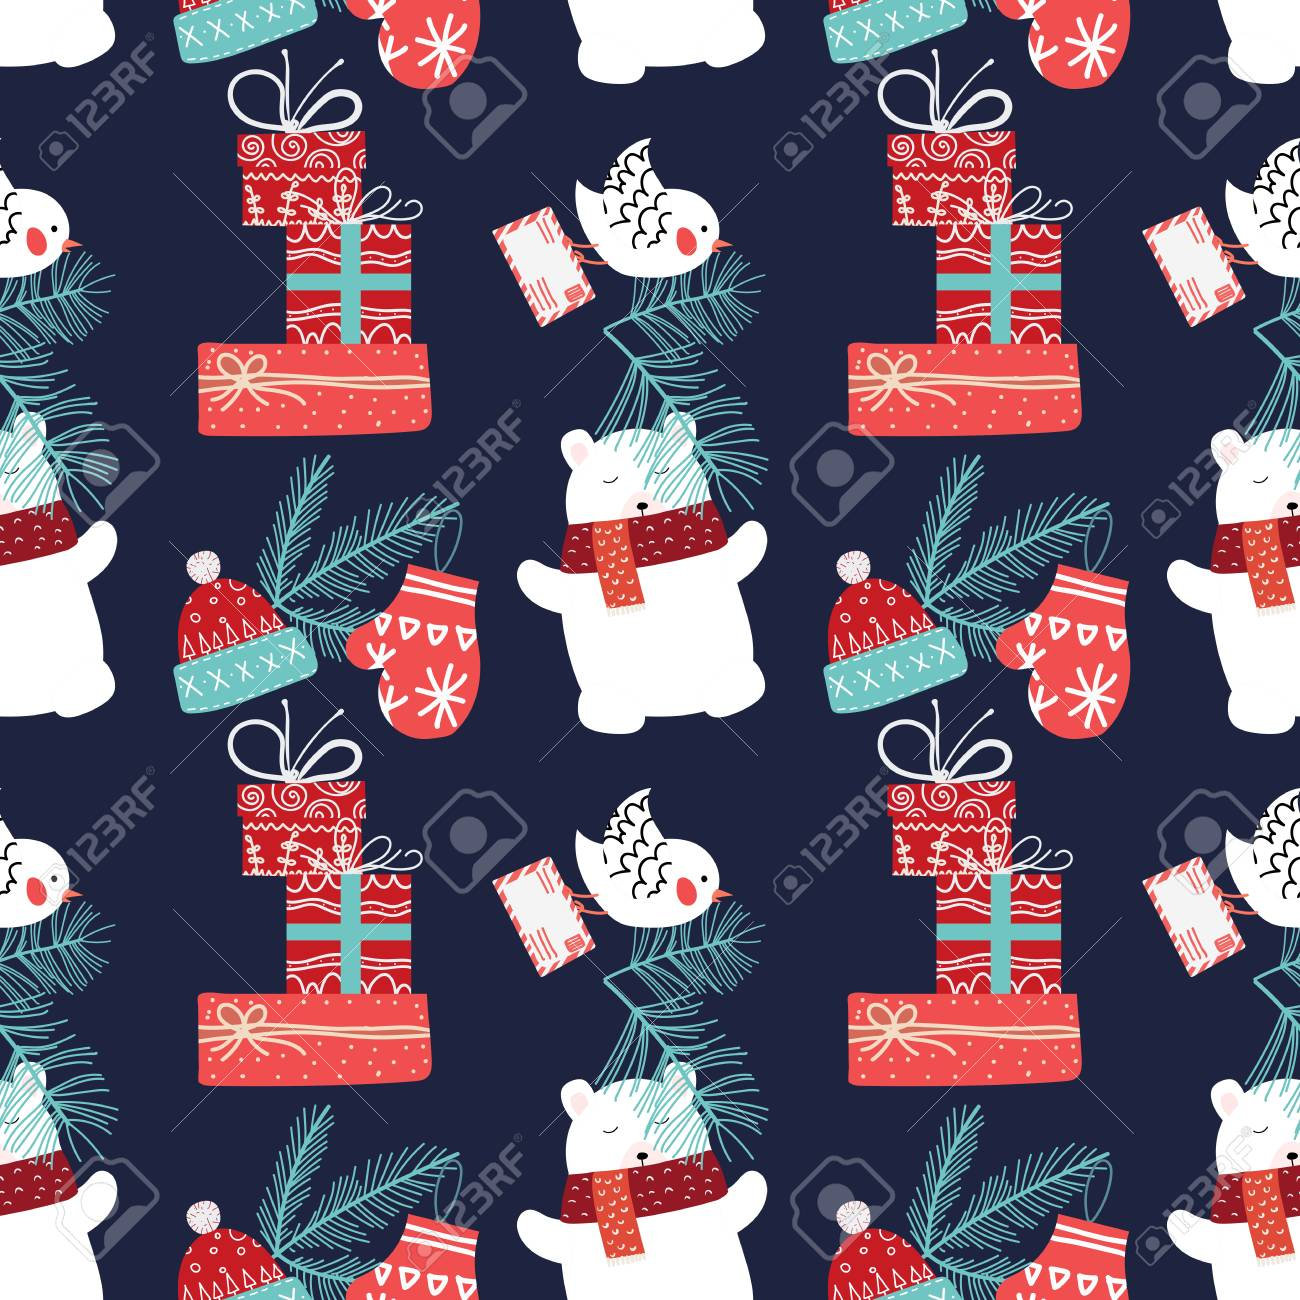 Cute Christmas and New Year seamless pattern with bear and gifts. - 127395534